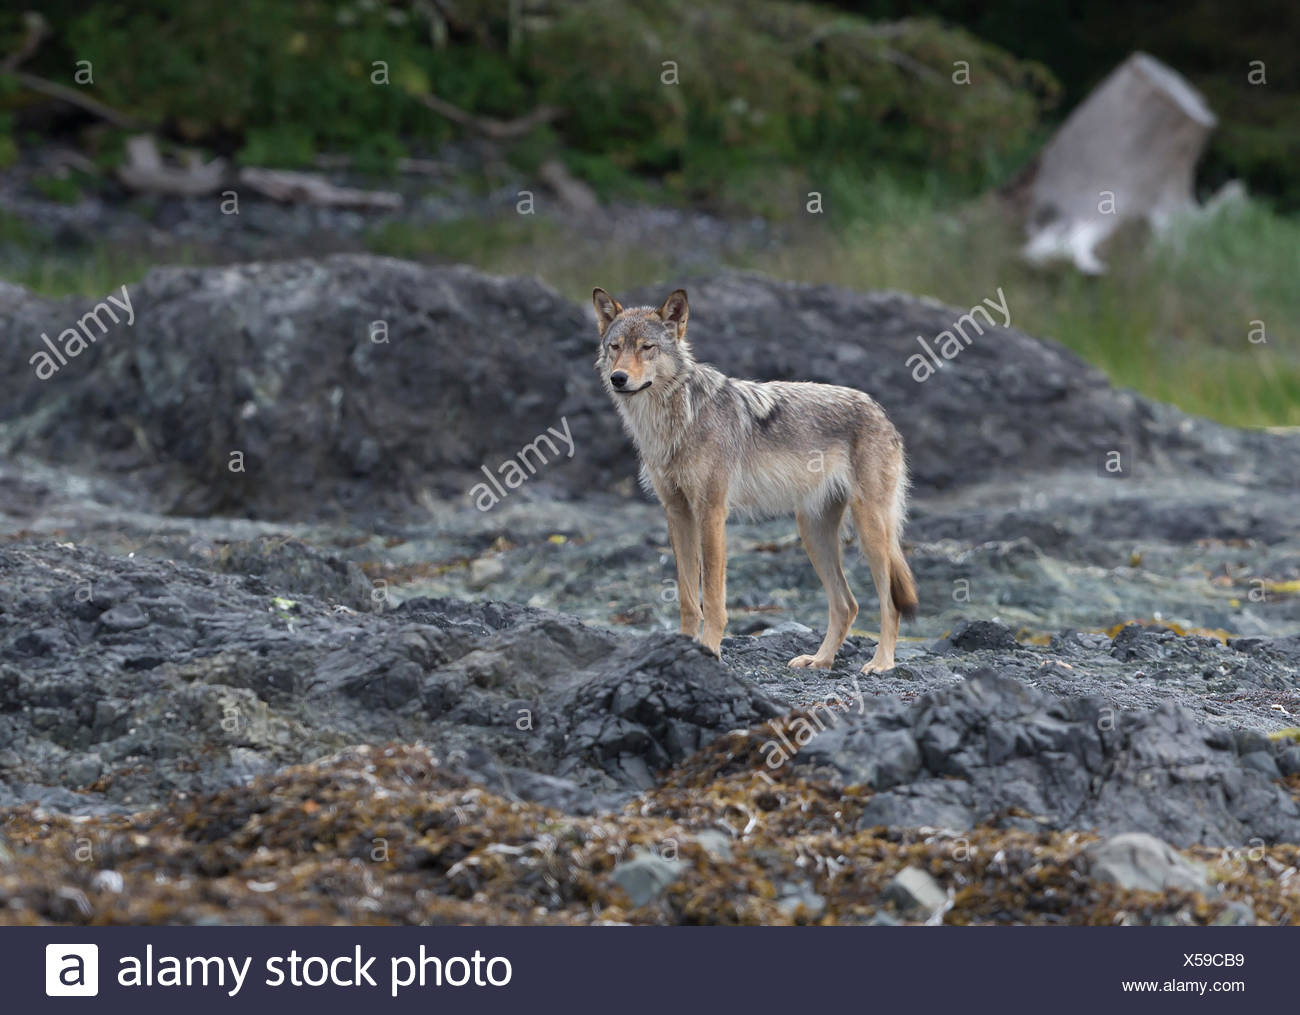 A Vancouver Island wolf pauses while walking along the shoreline on an island near Kyuquot, Vancouver Island, British Columbia, Canada - Stock Image